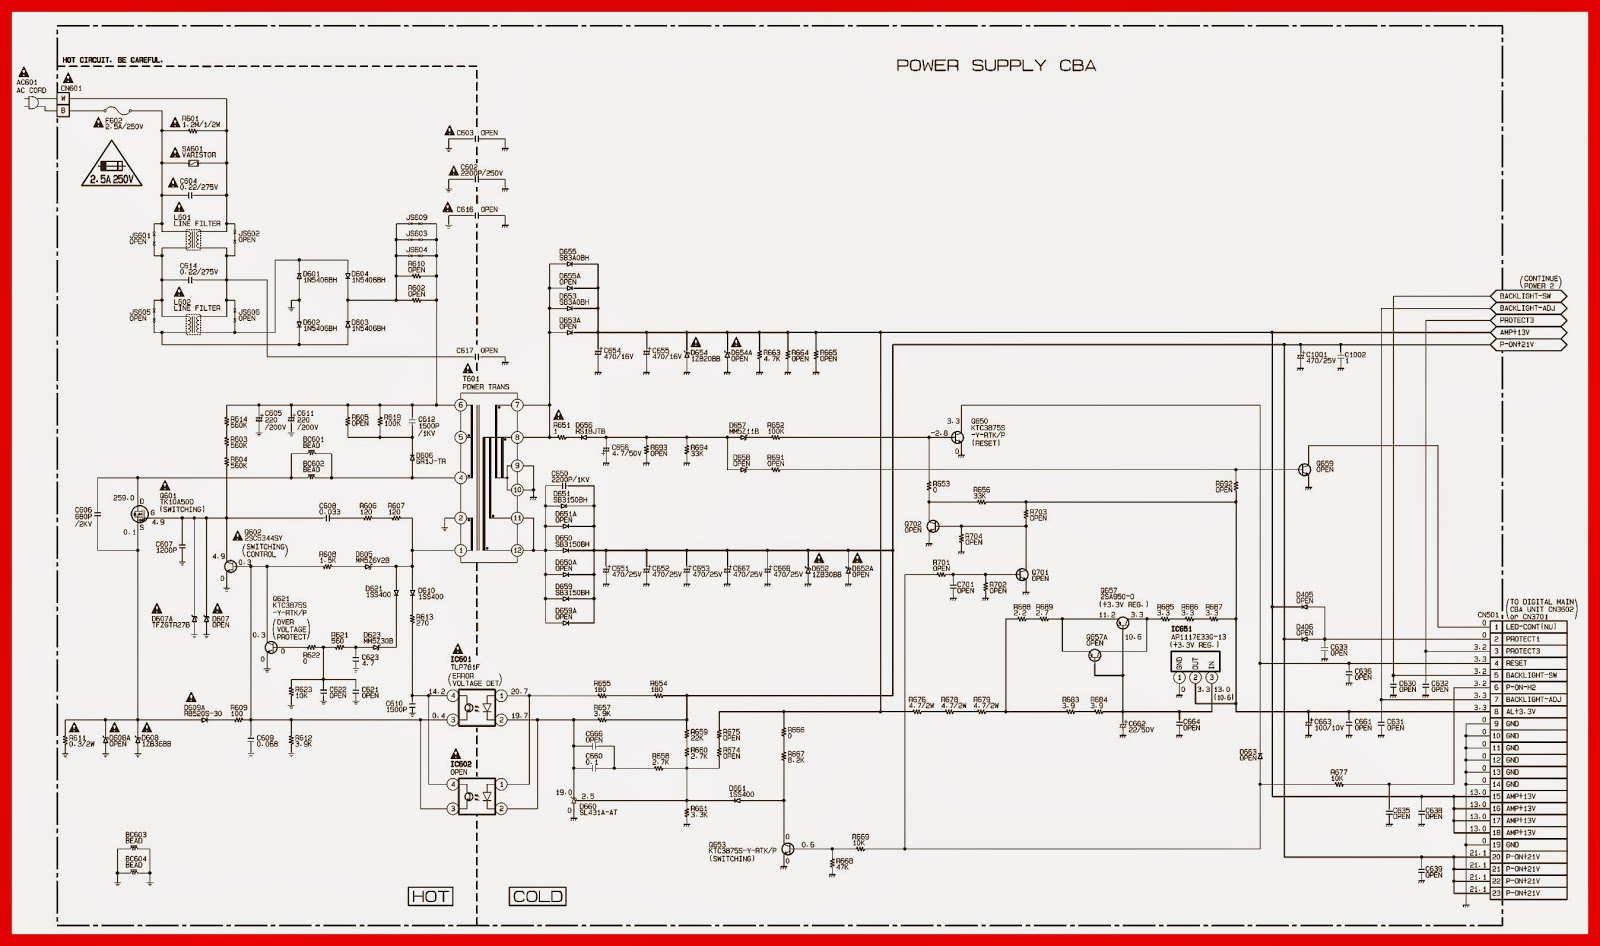 magnavox tv schematic diagrams wiring diagram used emerson and magnavox 39 inch lcd tv power supply [ 1600 x 946 Pixel ]